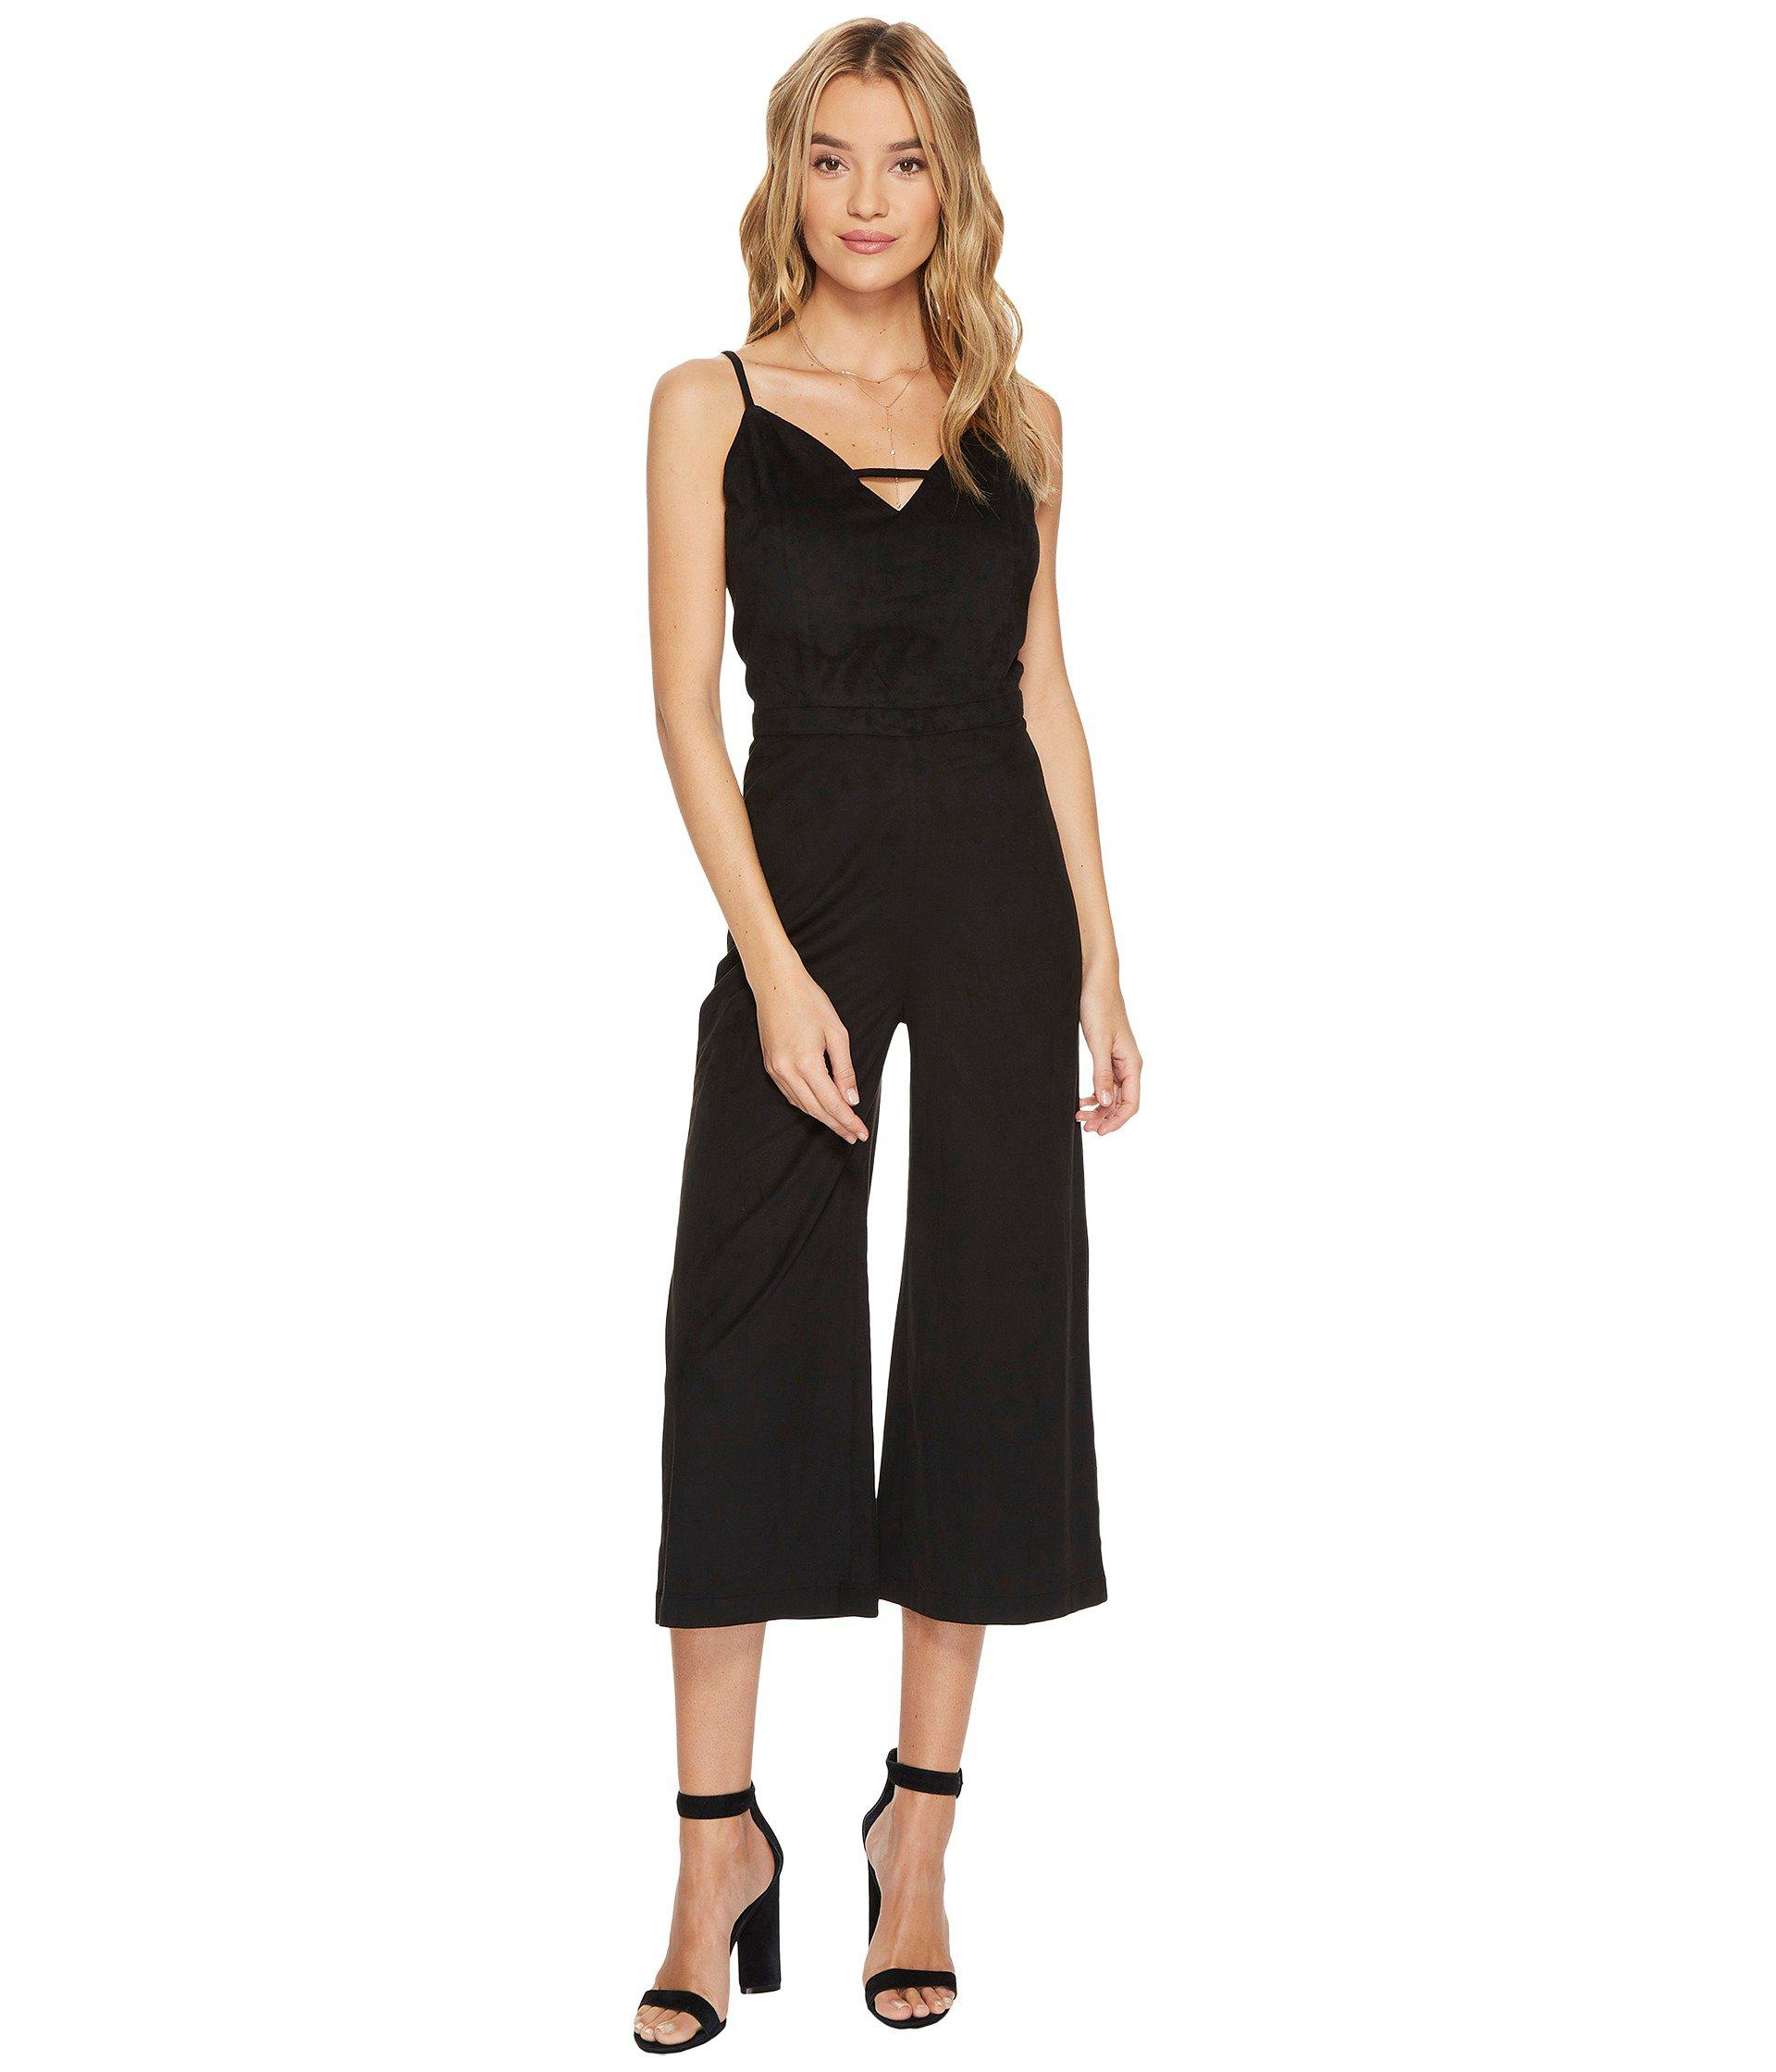 f35bb6141c2 Lyst - Jack BB Dakota Darcy Faux Suede Midi Jumpsuit in Black - Save 42%